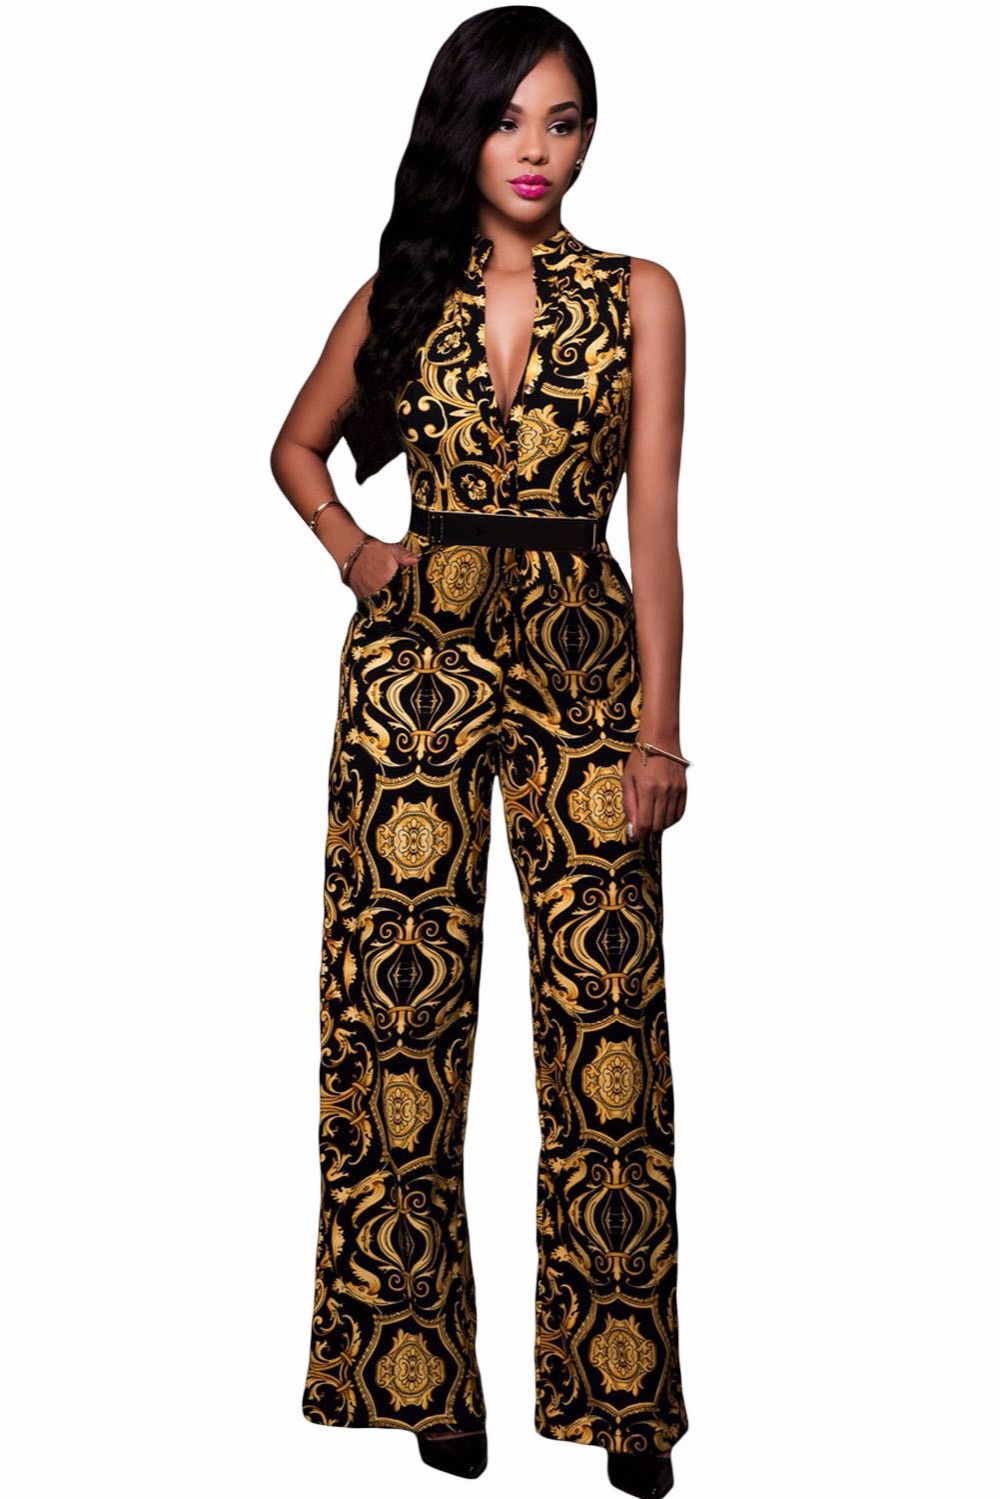 4163b8cbce6e 2016 New Fashion Plus Size Sexy Club Rompers Women Jumpsuit 2 Colors Print Gold  Belted Jumpsuit LC64021 macacao feminino-in Jumpsuits from Women s Clothing  ...